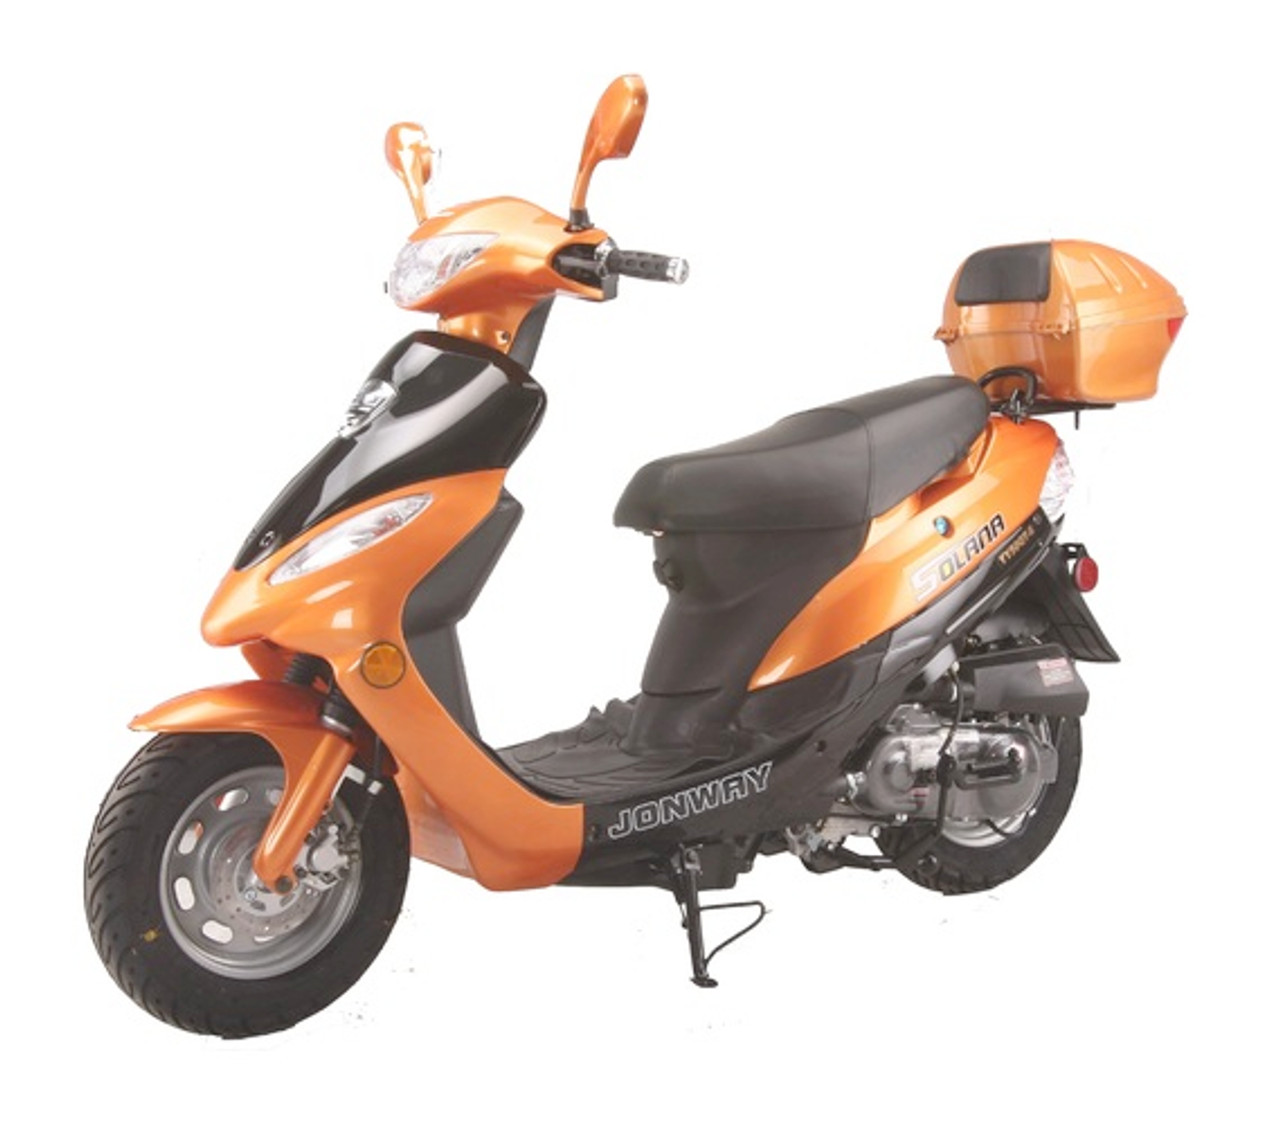 Cougar Cycle SOLANA 49cc QT-5 Scooter, 4 Stroke, Air-Forced Cool, Single Cylinder - Fully Assembled and Tested